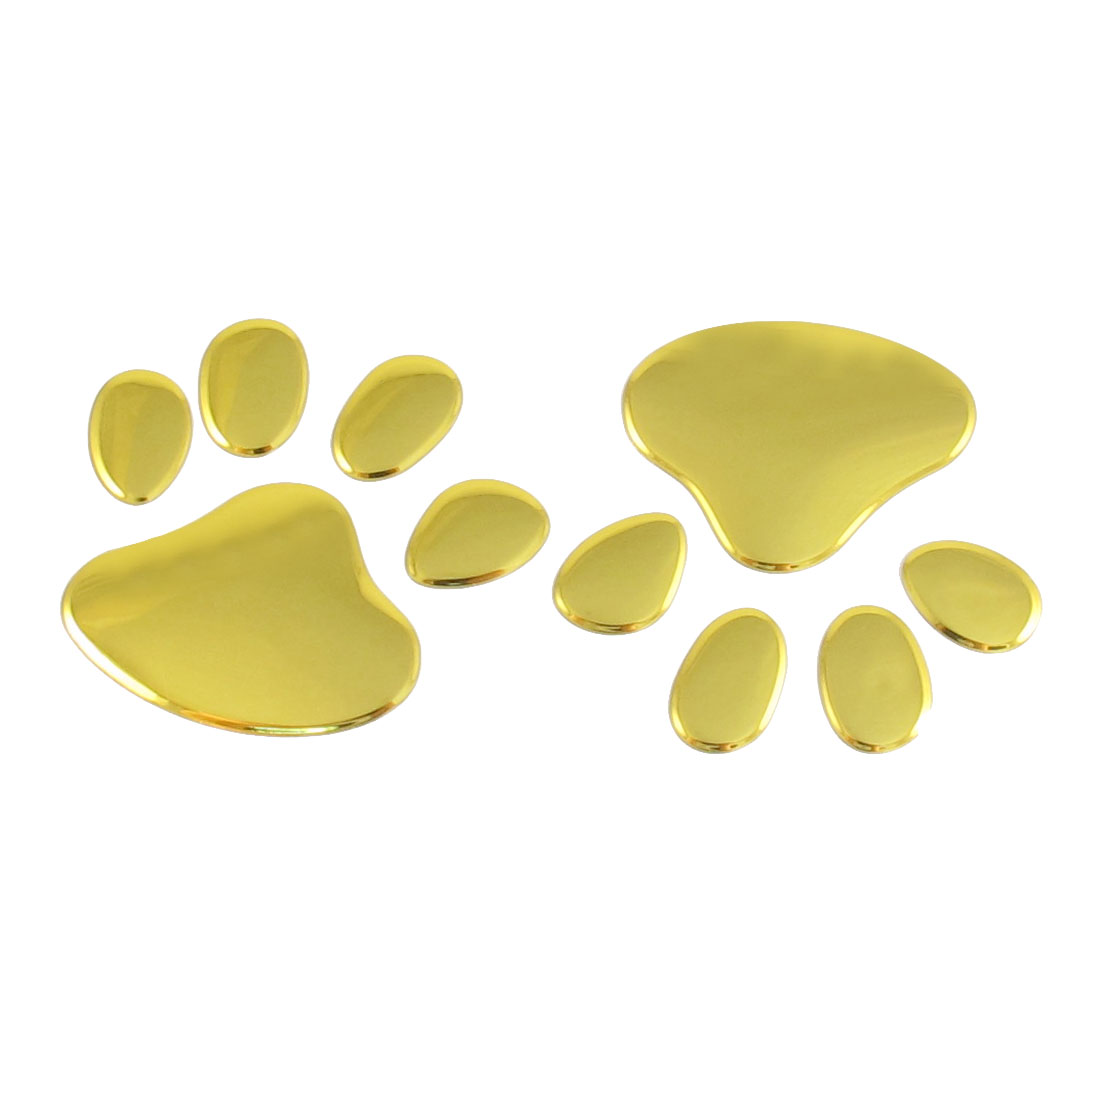 Car Auto Self Adhesive Puppy Paw 3D Emblem Sticker Decor Gold Tone